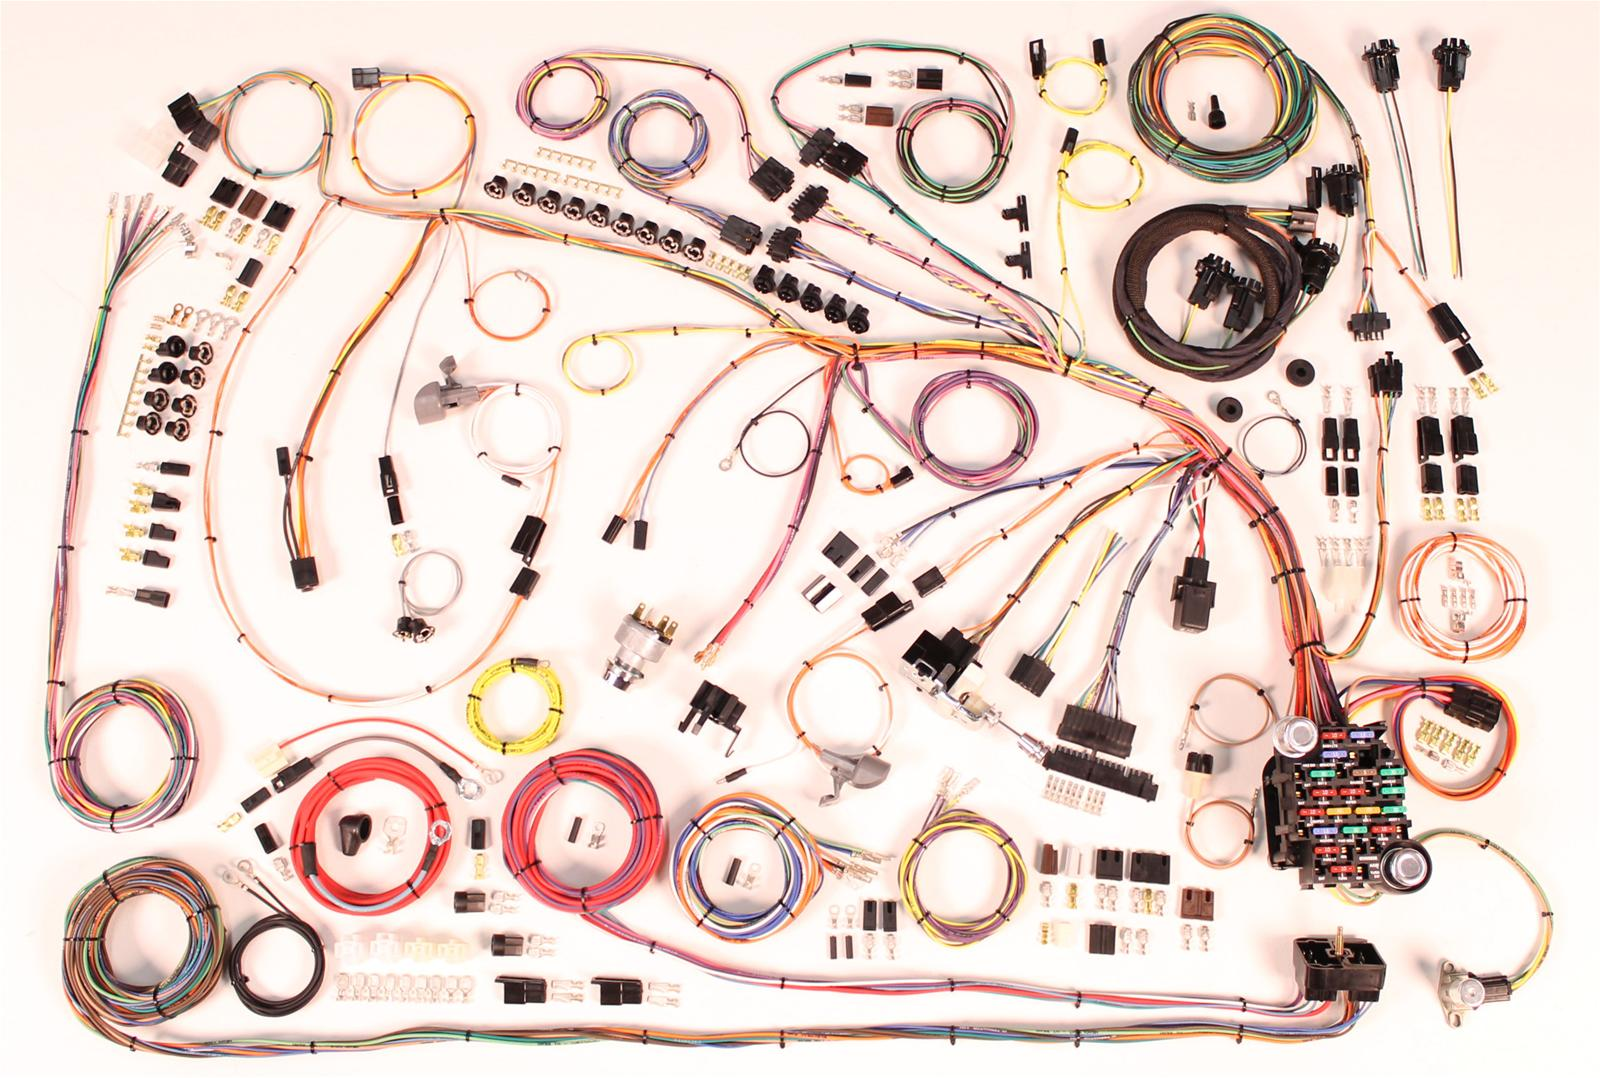 1968 chevrolet camaro american autowire classic update series wiring  harness kits 510360 - free shipping on orders over $99 at summit racing